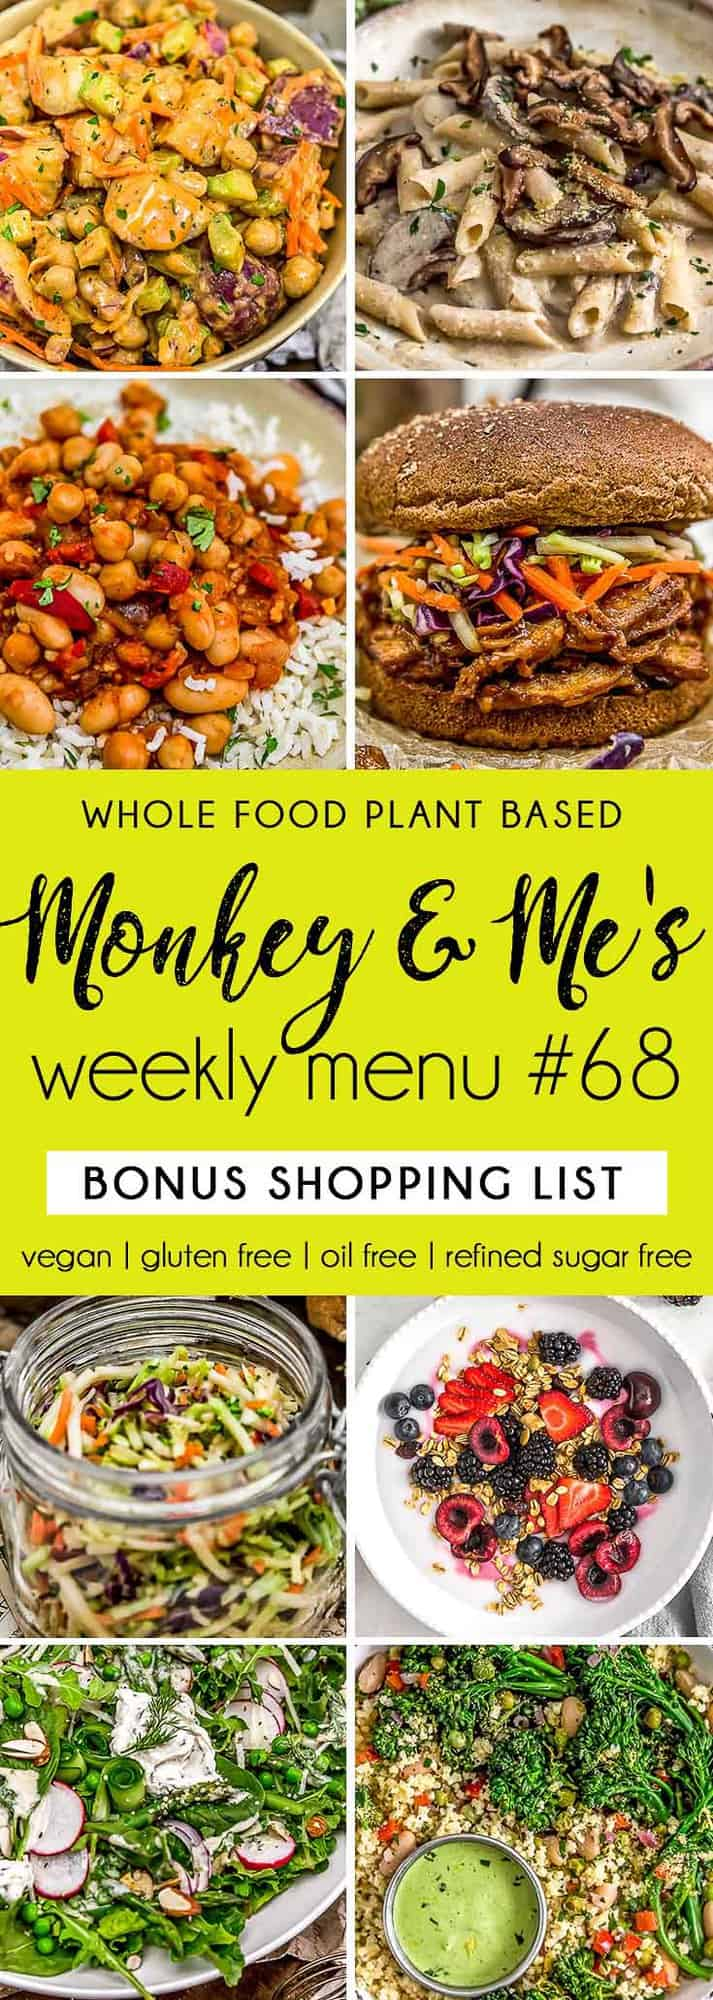 Monkey and Me's Menu 68 featuring 8 recipes